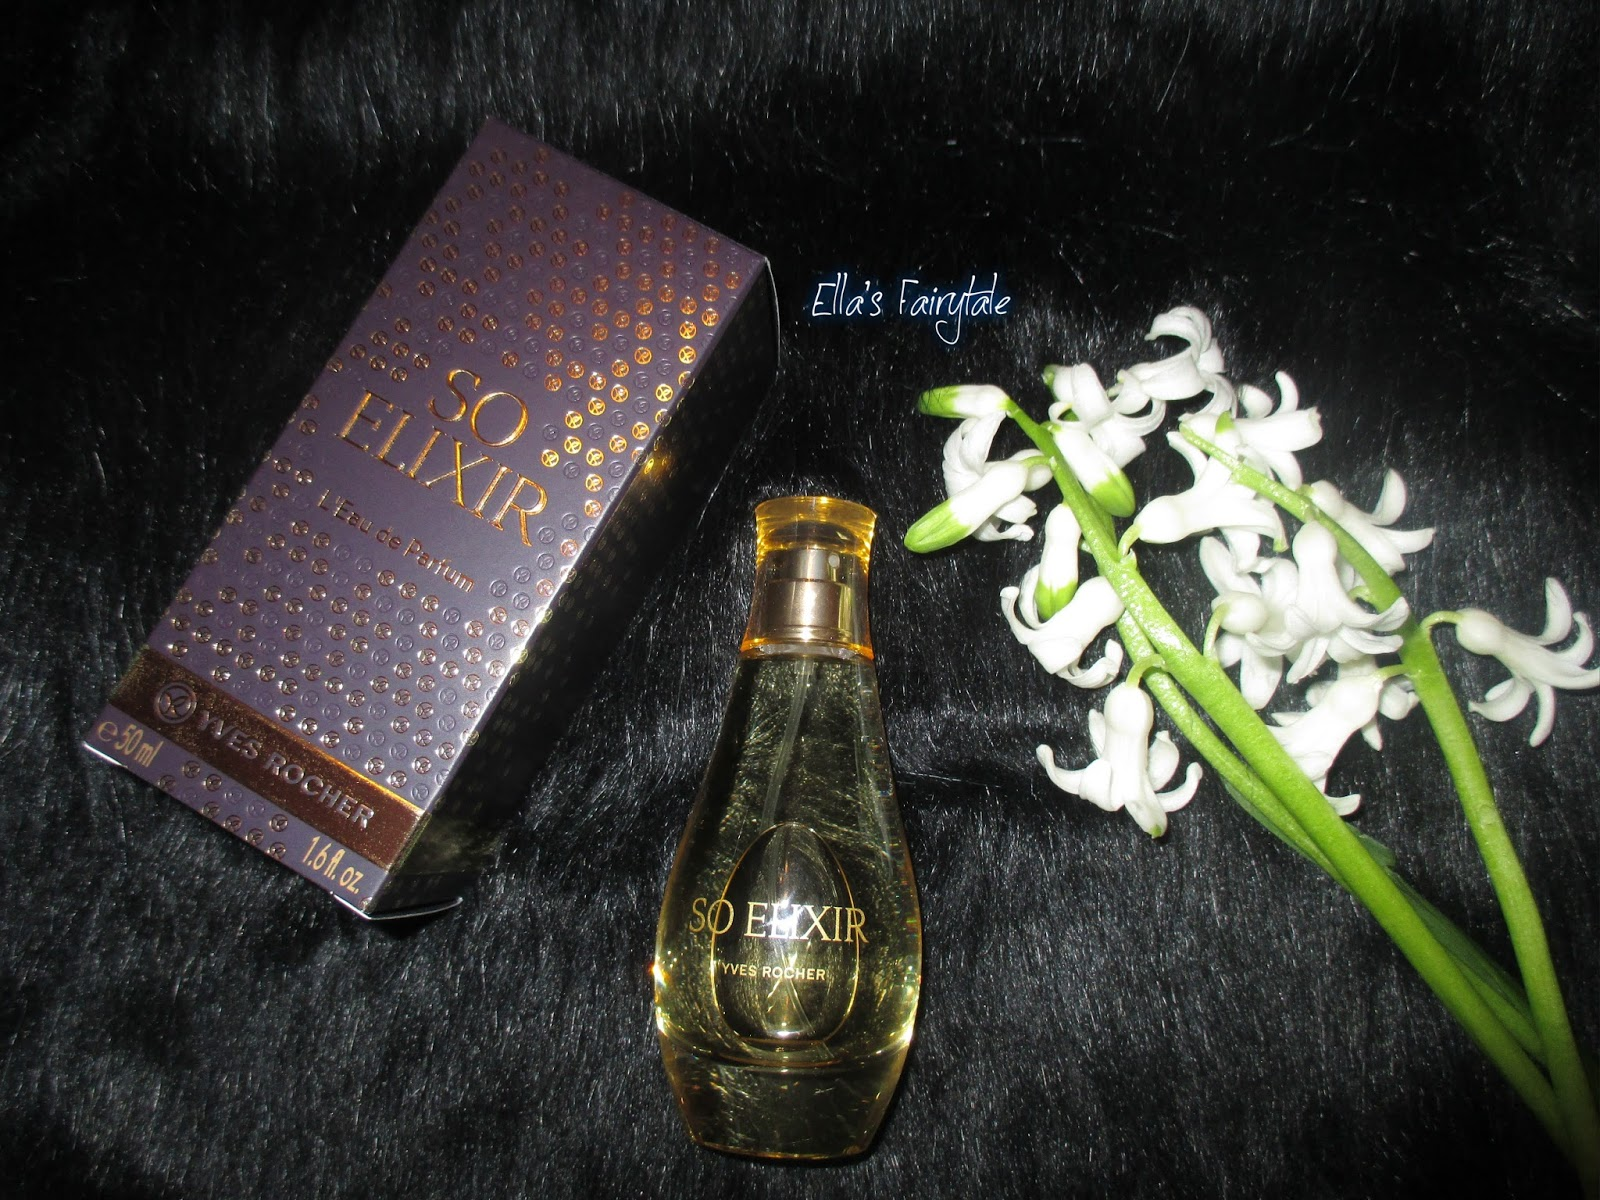 Ellas Fairytale Review Parfum So Elixir De La Yves Rocher